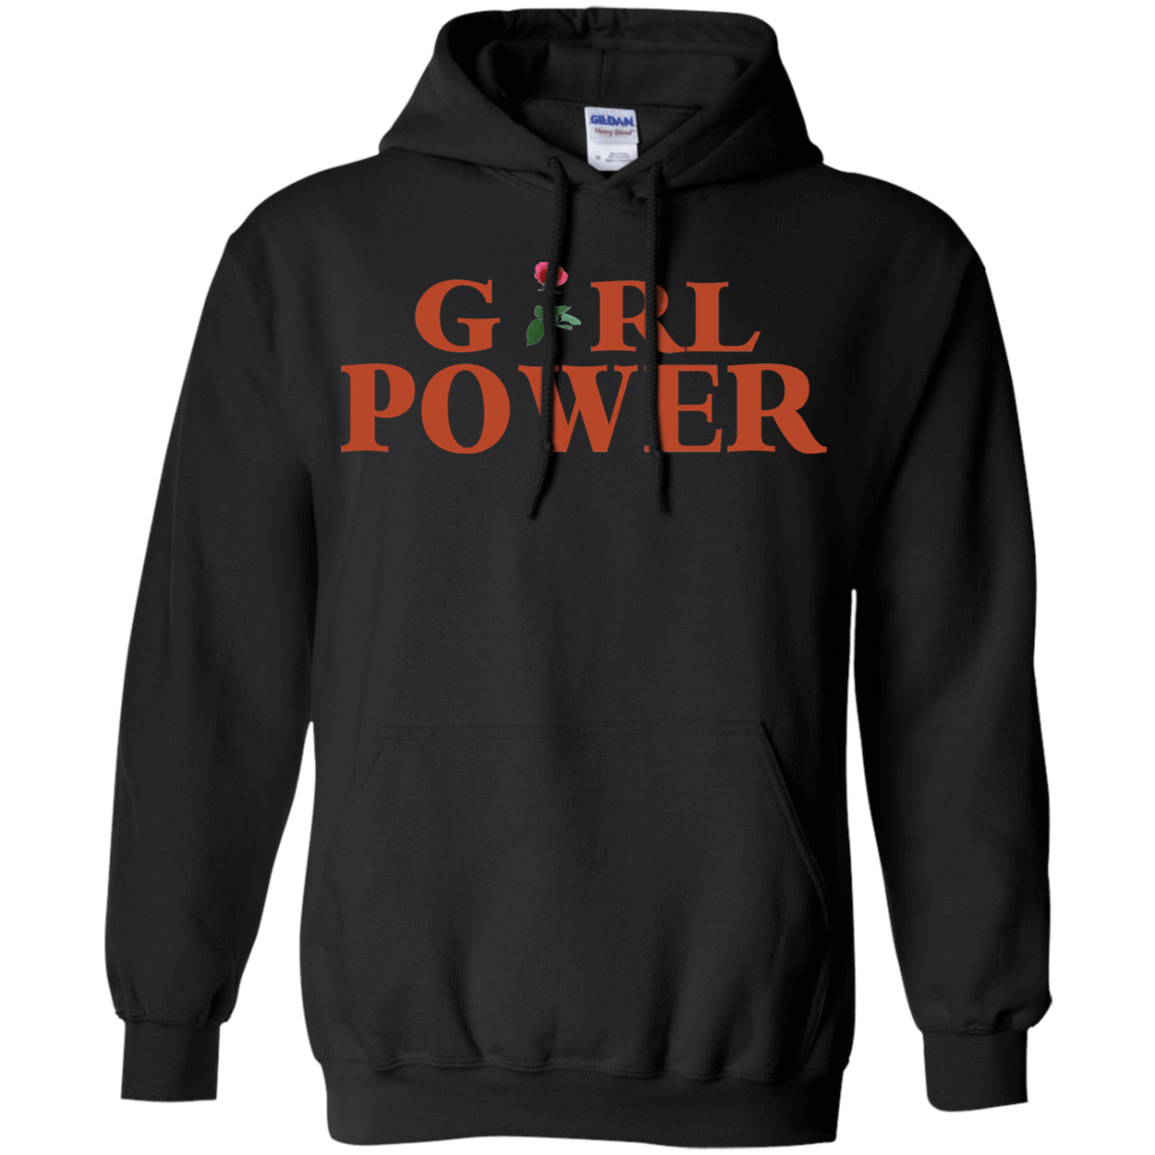 Girl Power Yellow 541-4740-73890288-23087 - Tee Ript